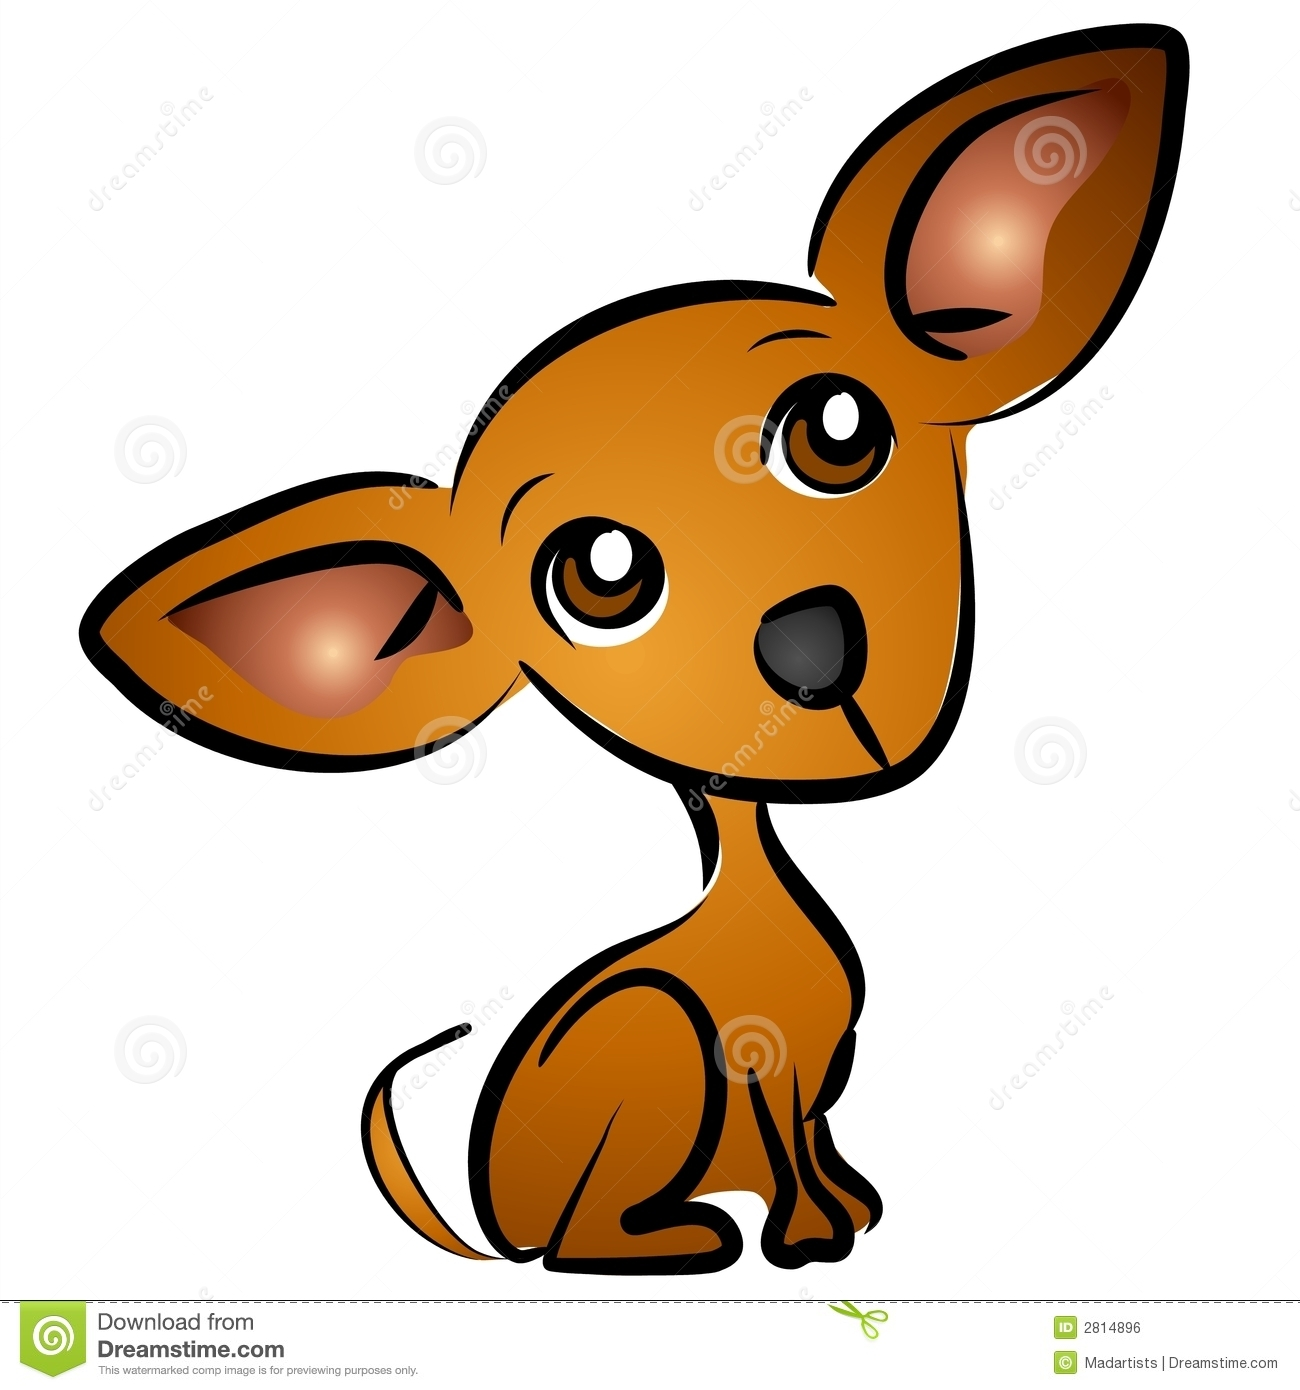 Clipart dog bigand small royalty free Big And Small Dog Clipart - clipartsgram.com royalty free